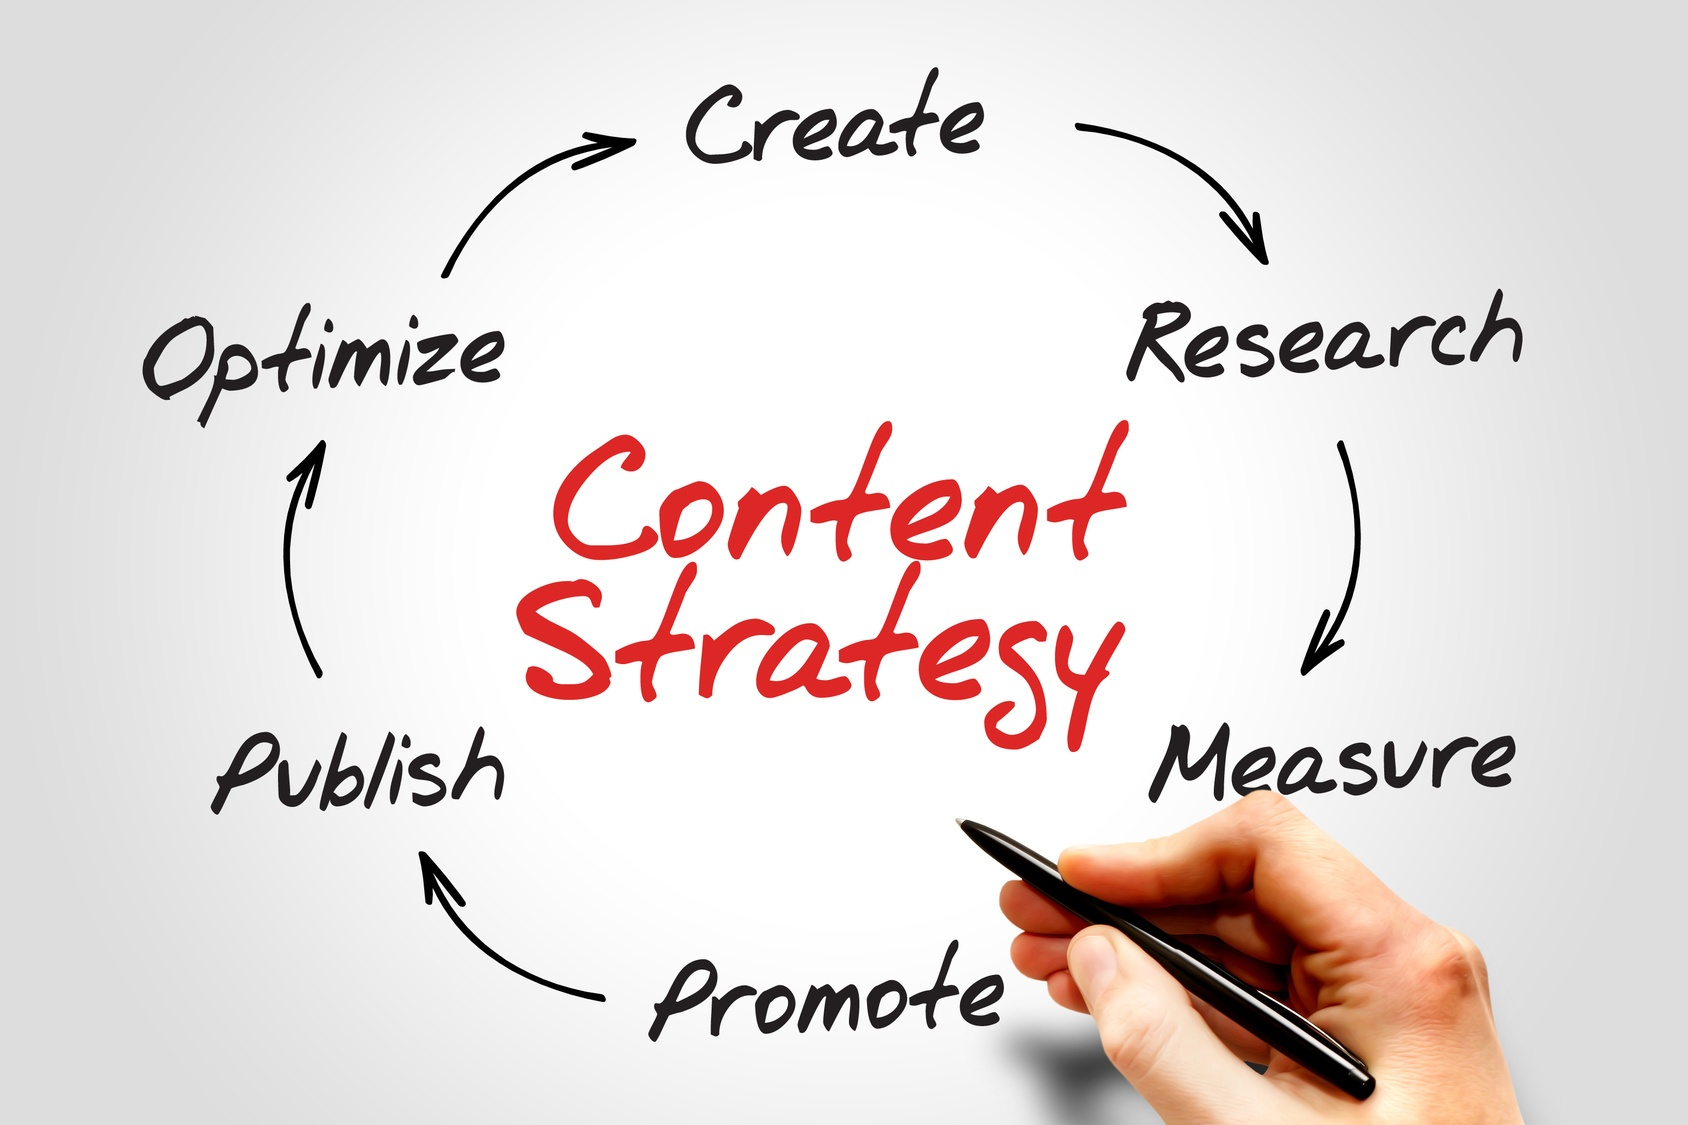 Content creation is a never-ending cycle of creating, researching, promoting, and optimizing content then studying the results to make even better content next time to drive business results.